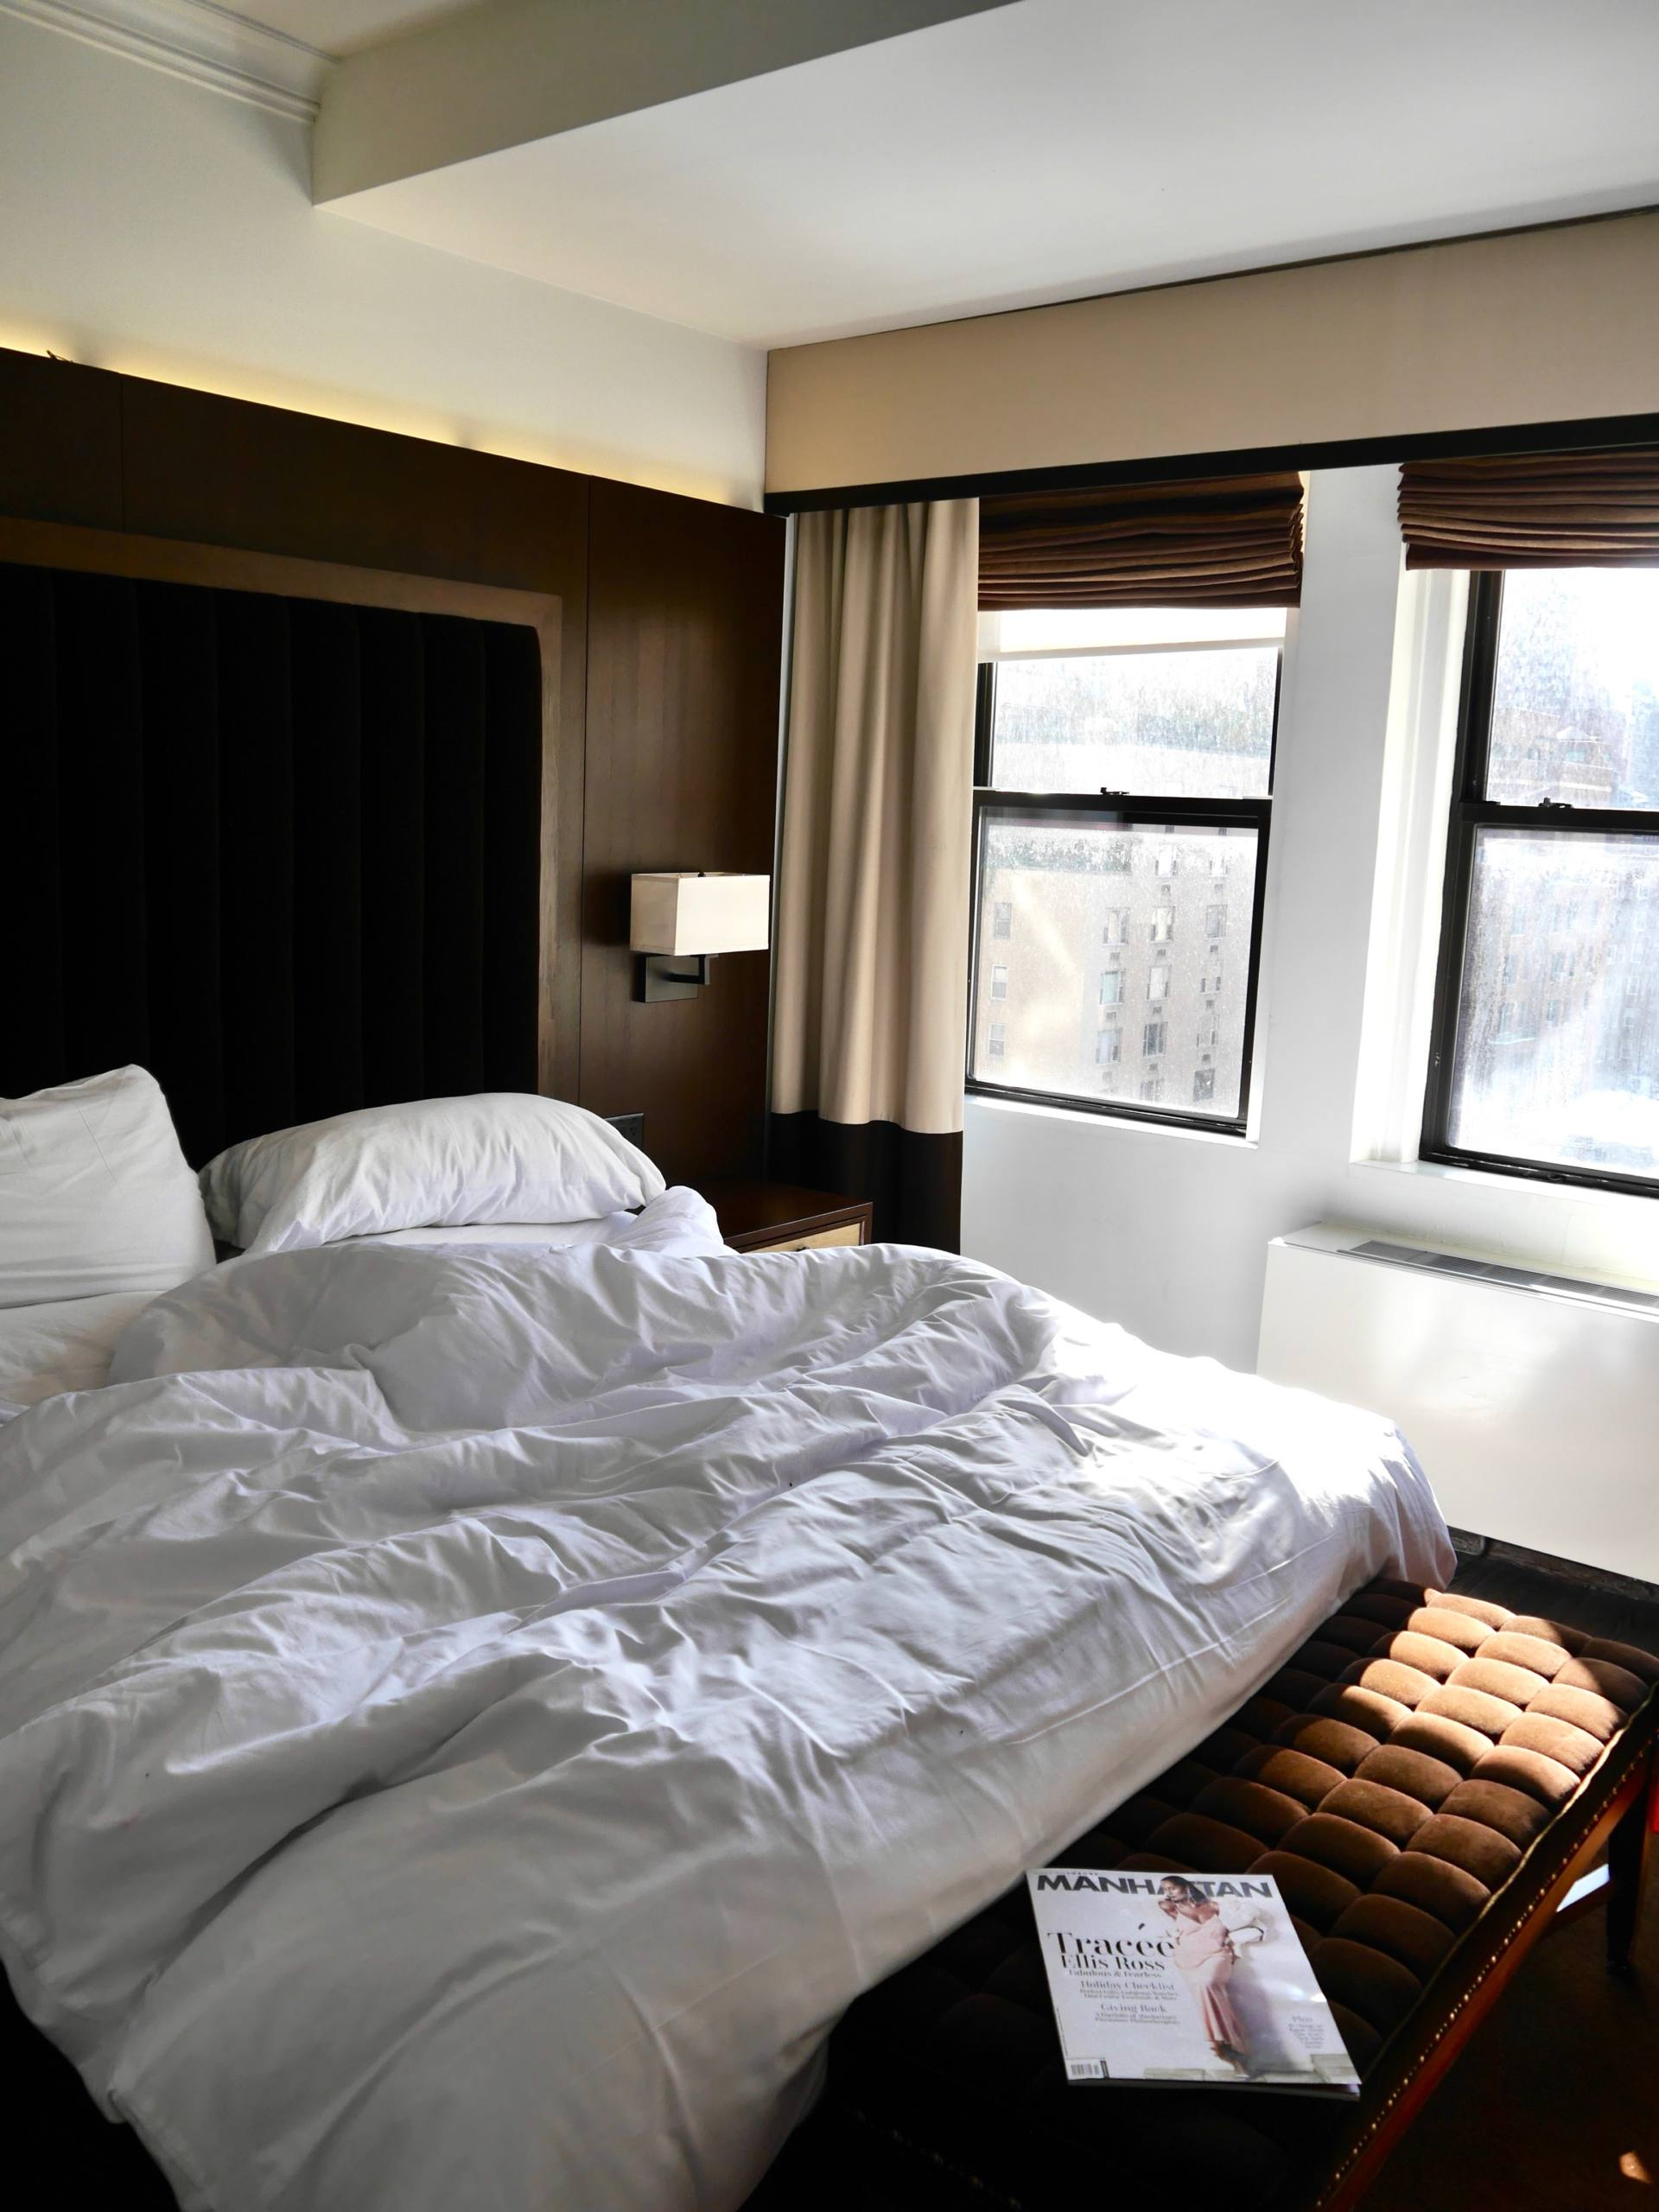 Hotels In New York That Start With L